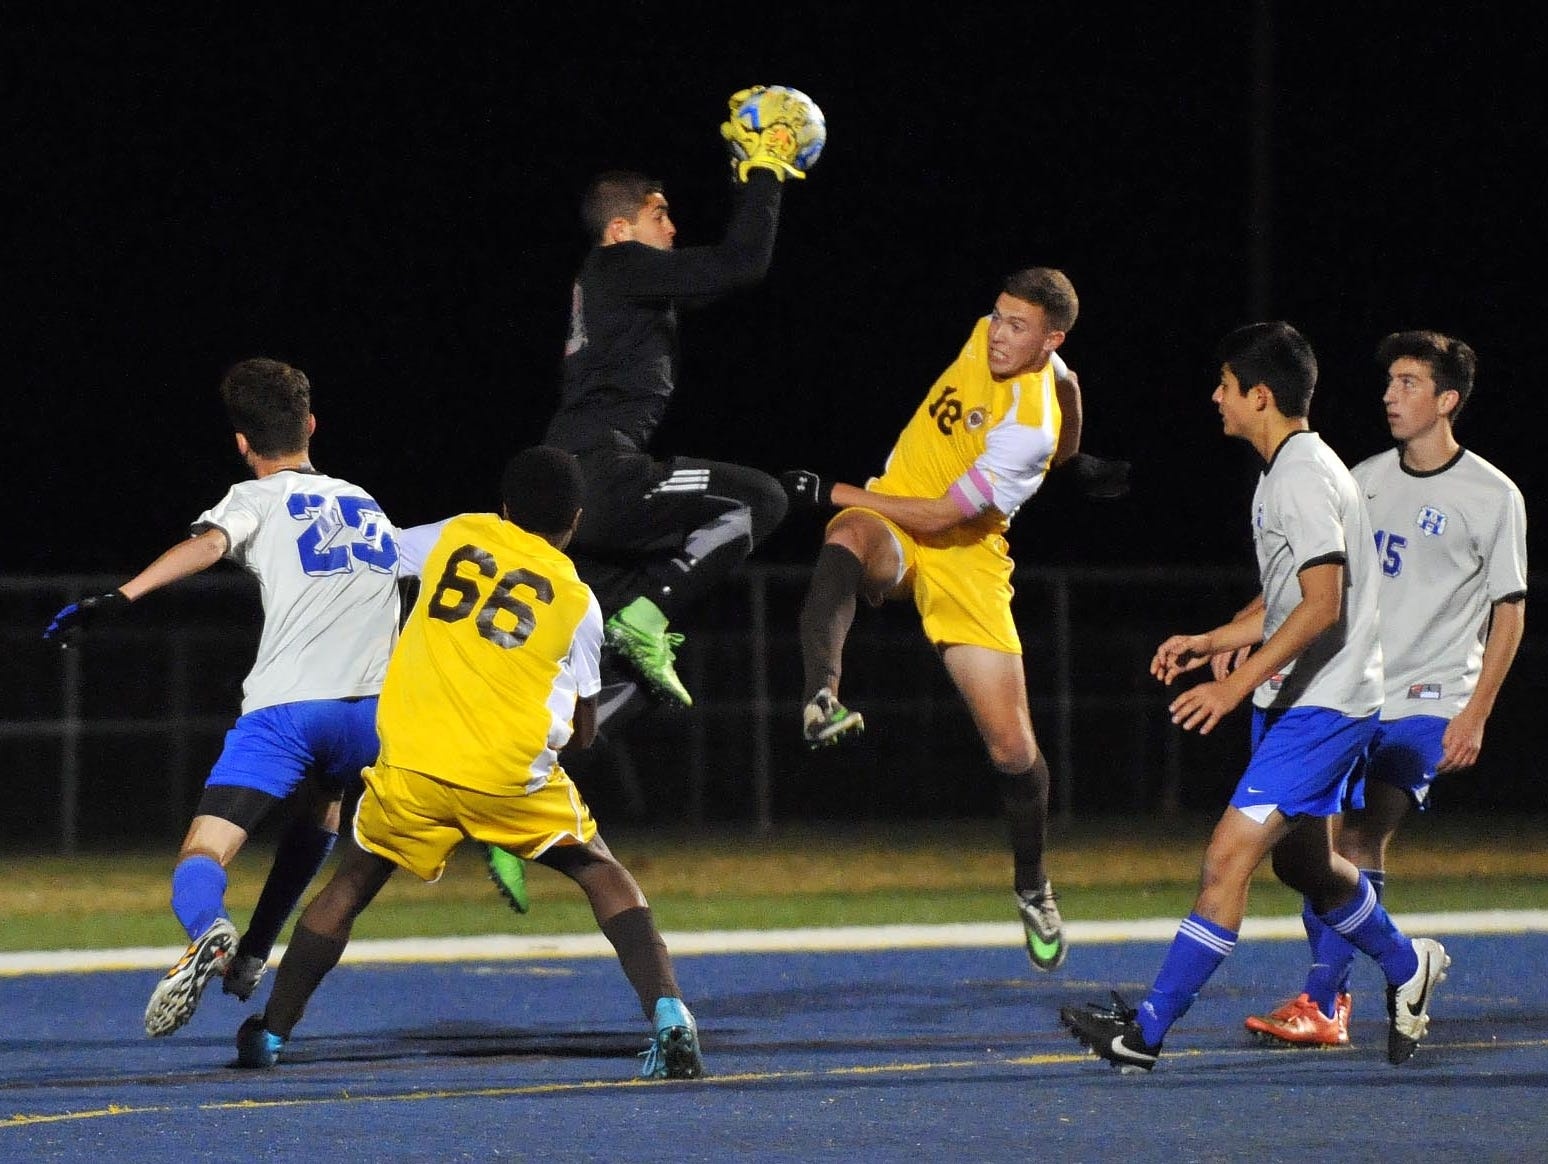 Holmdel goalkeeper Tyler Marchiano (top) makes a save against Delran in their Group 2 boys' soccer semifinal, Tuesday, Nov. 17 in Buena Vista.